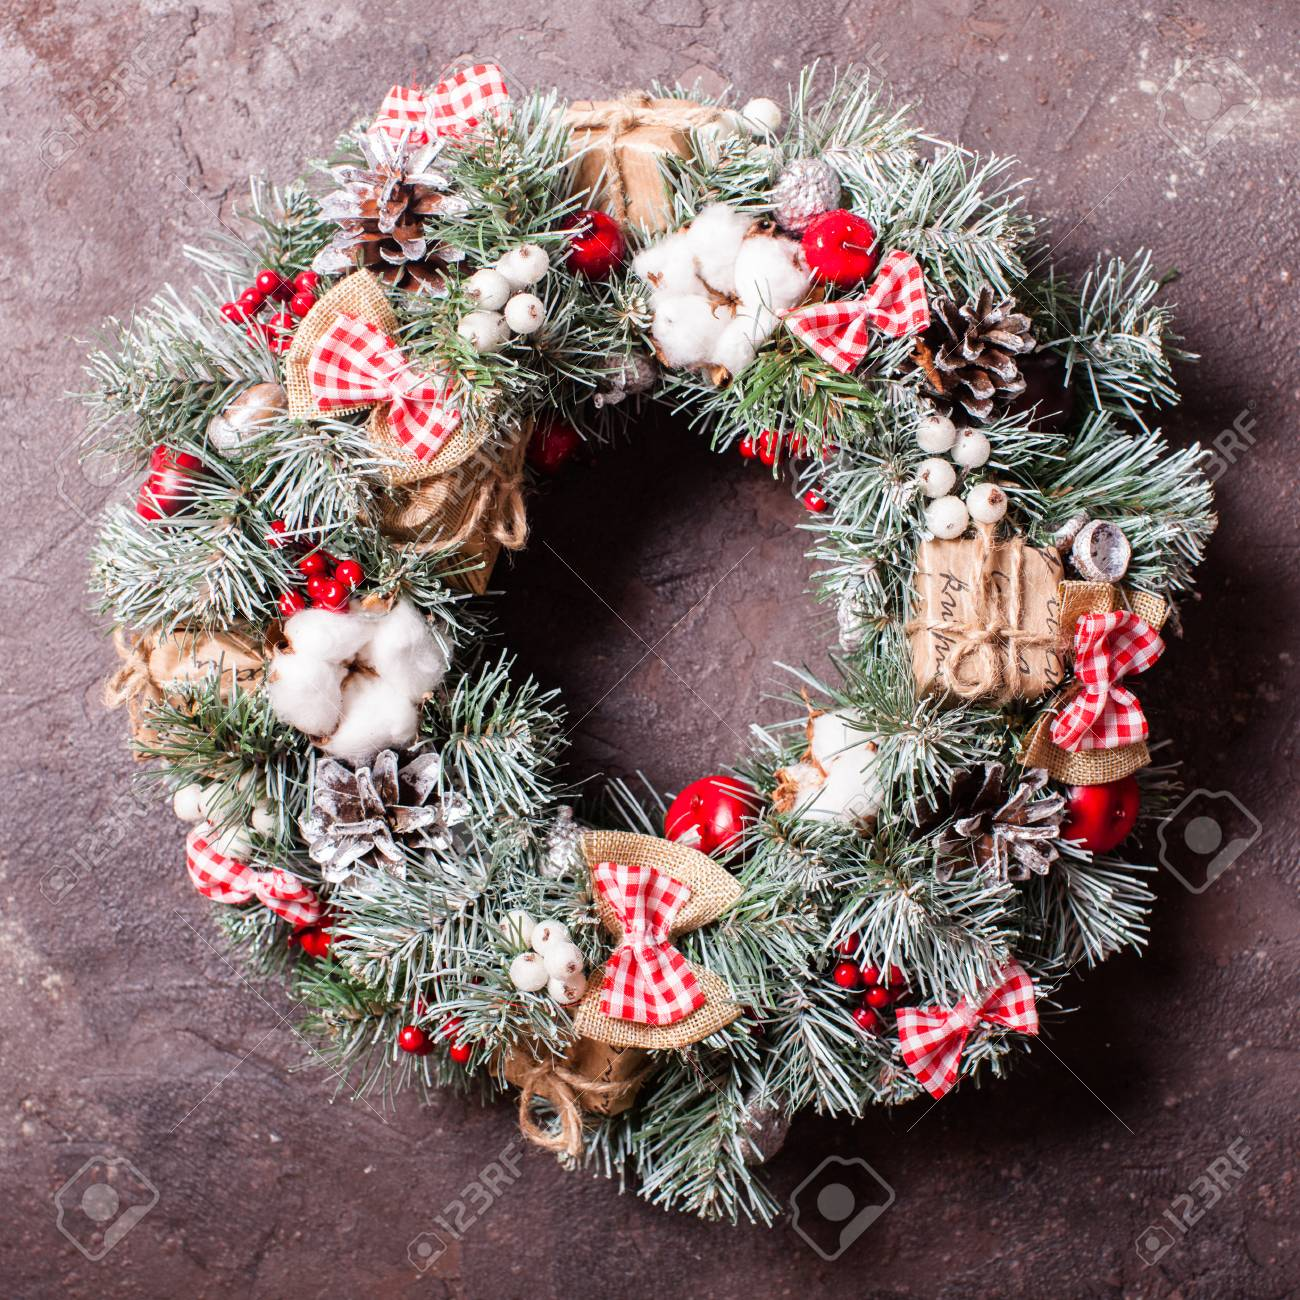 Red And White Christmas Wreath.Red And White Christmas Wreath With Bows And Cotton Flowers